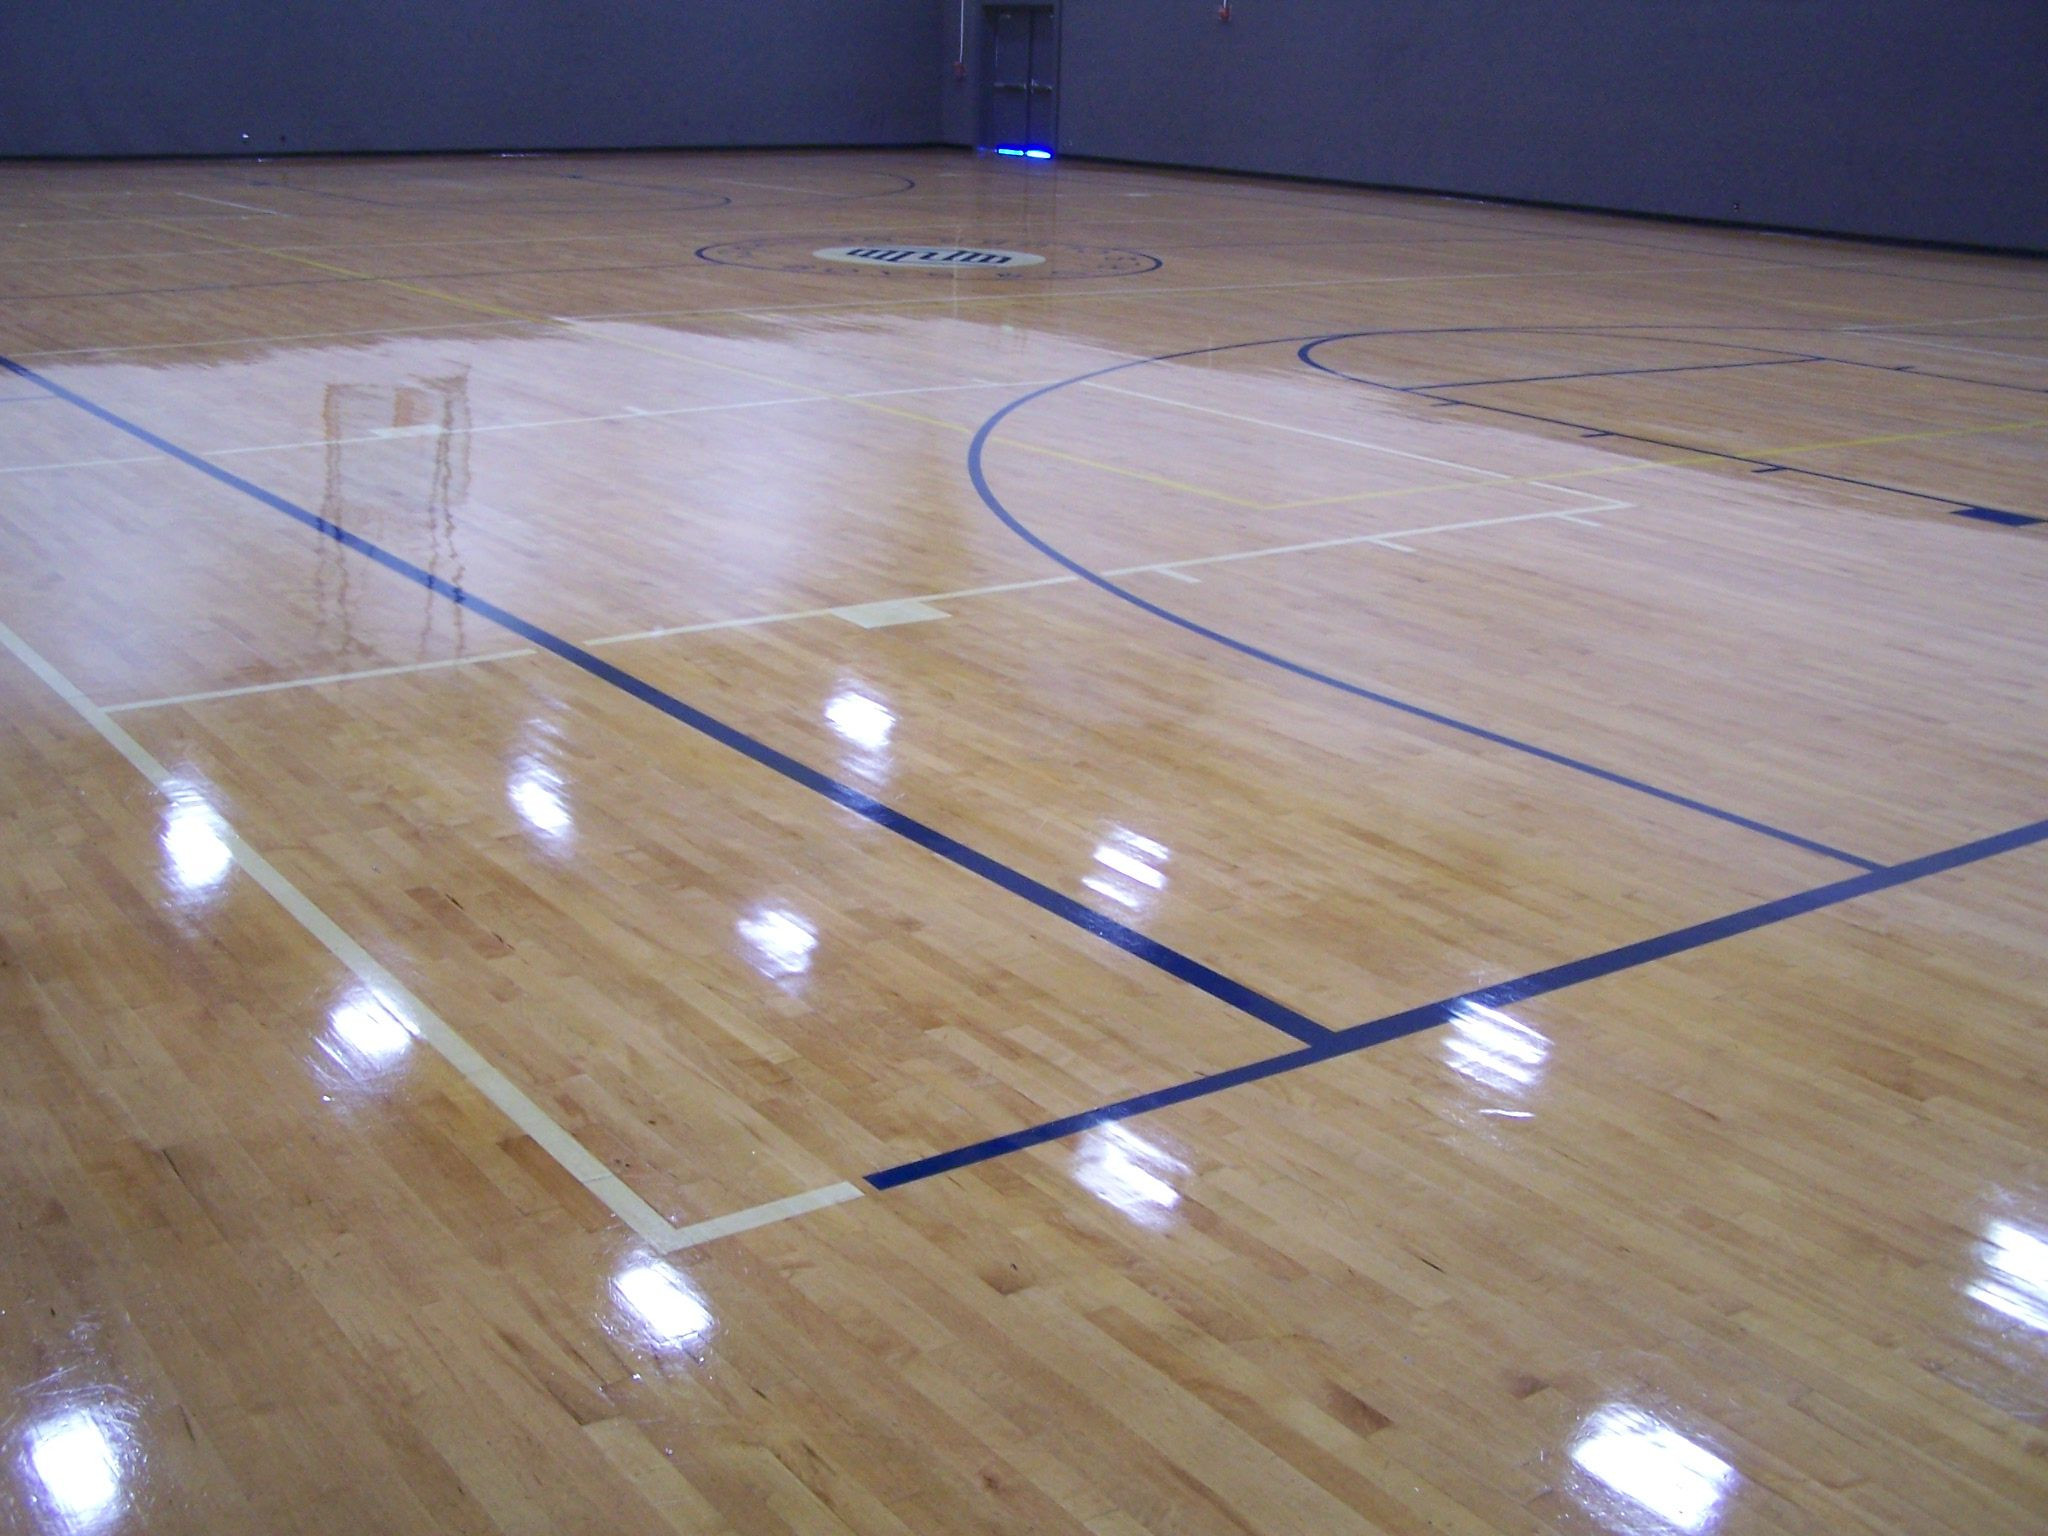 hardwood floor refinishing oakland ca of beautiful gym floor restoration made easy and long lasting with the with beautiful gym floor restoration made easy and long lasting with the surtec system